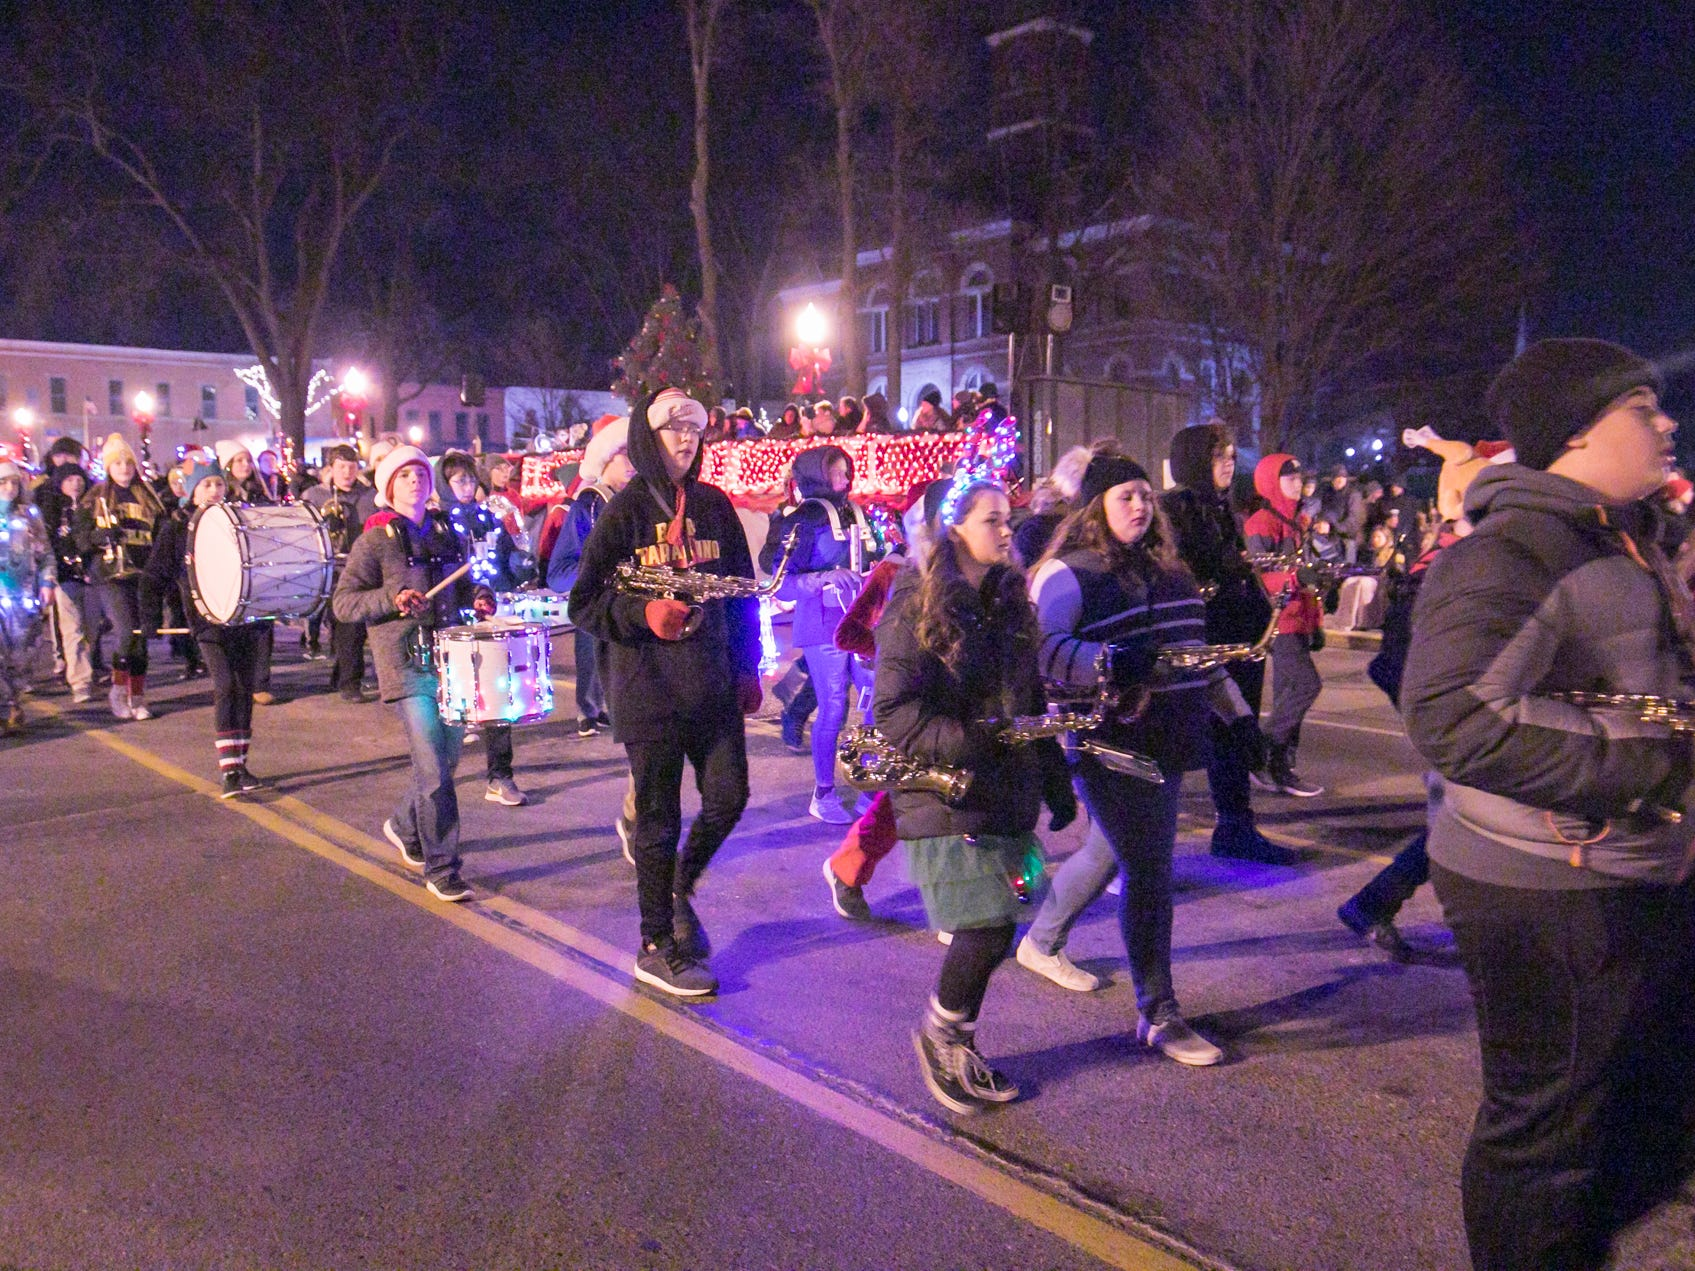 The Parker Middle School marching band proceeds down the Fantasy of Lights parade route Friday, Nov. 23, 2018.